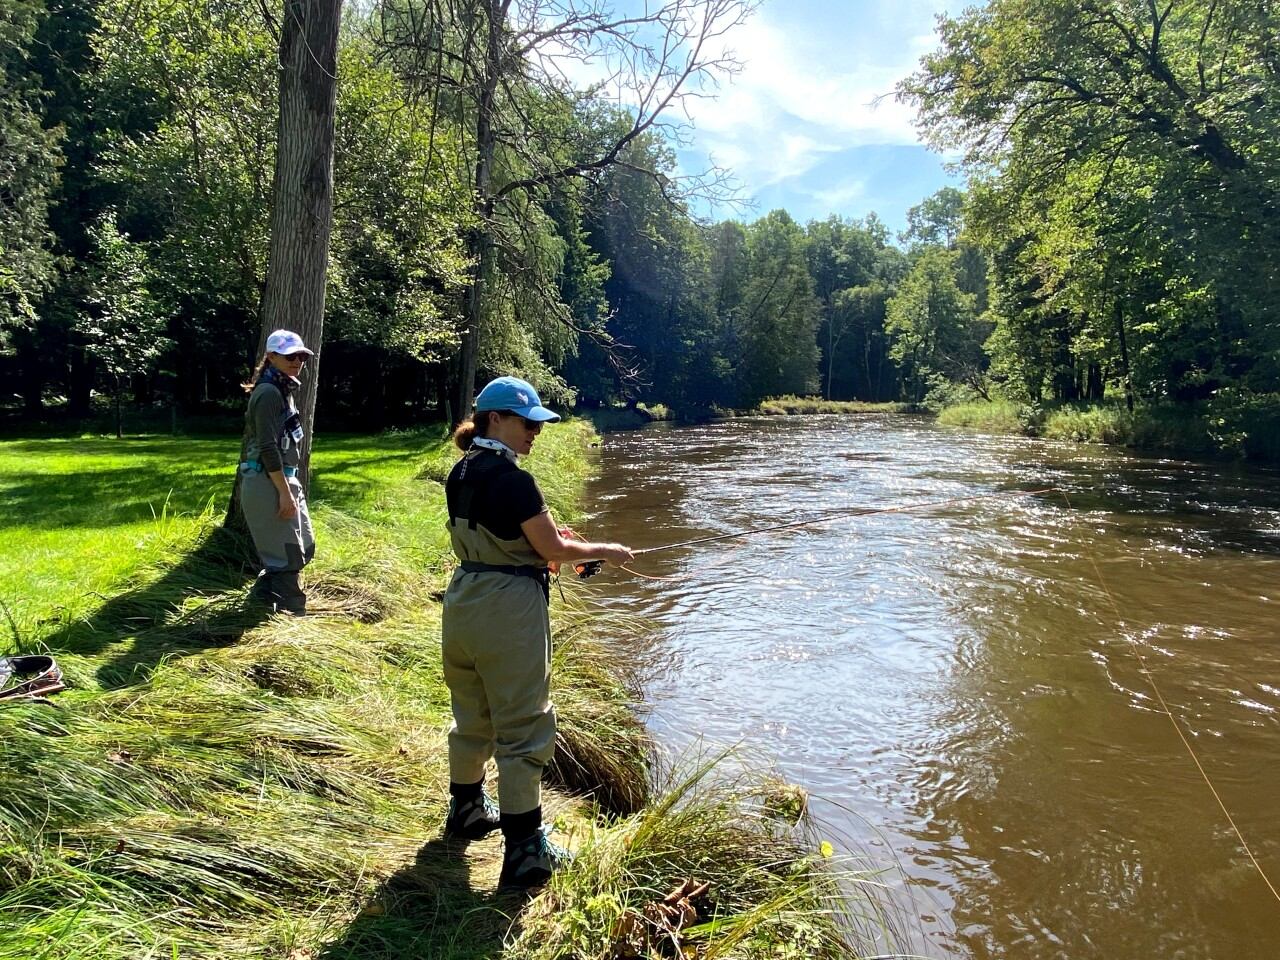 Participants in Casting For Recovery fish along the riverbank